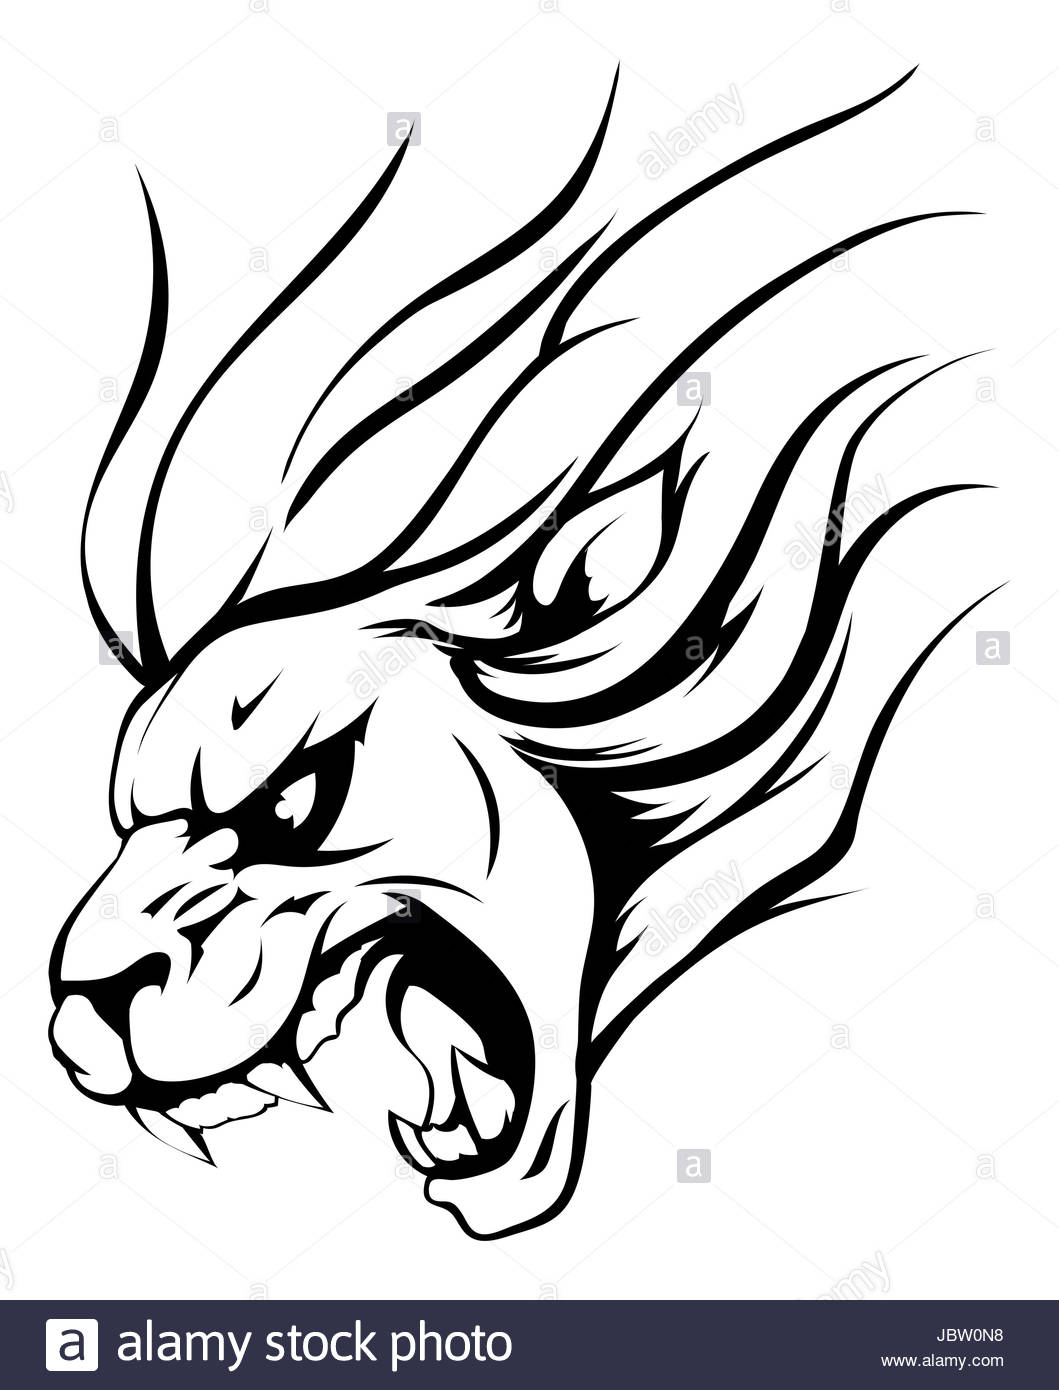 1059x1390 An Illustration Of A Strong Angry Lion Mascot Roaring Stock Photo